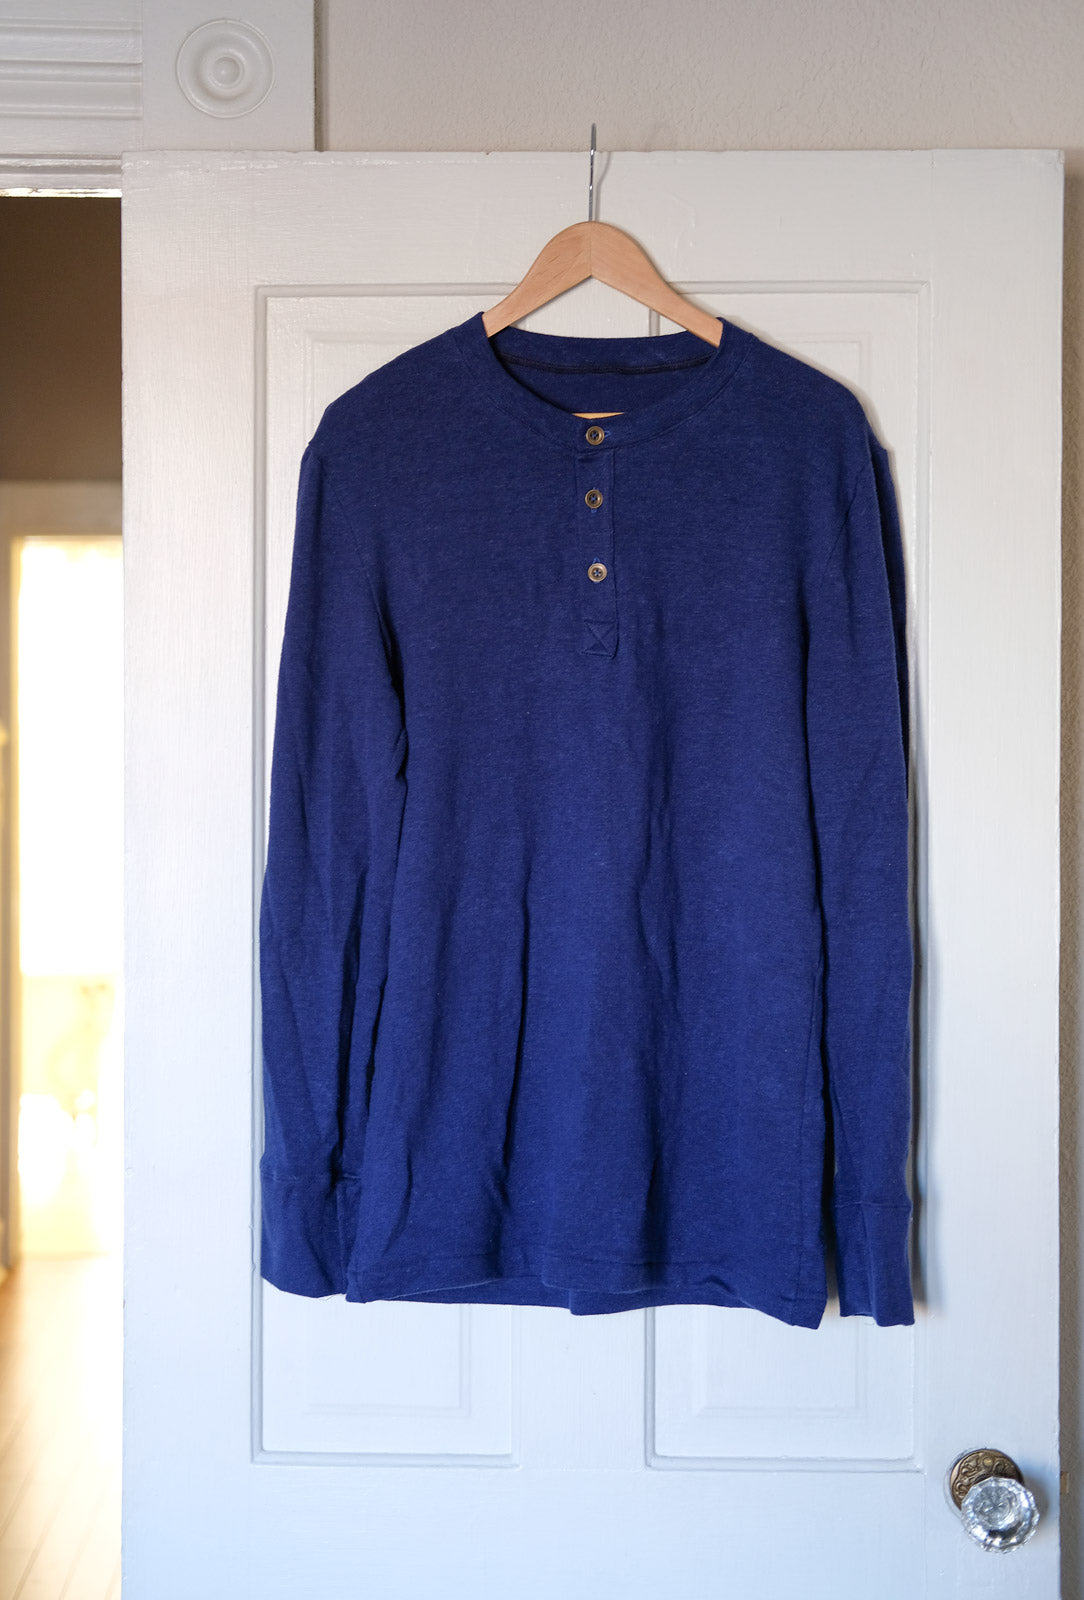 Royal Blue Thread Theory Henley hanging on a door